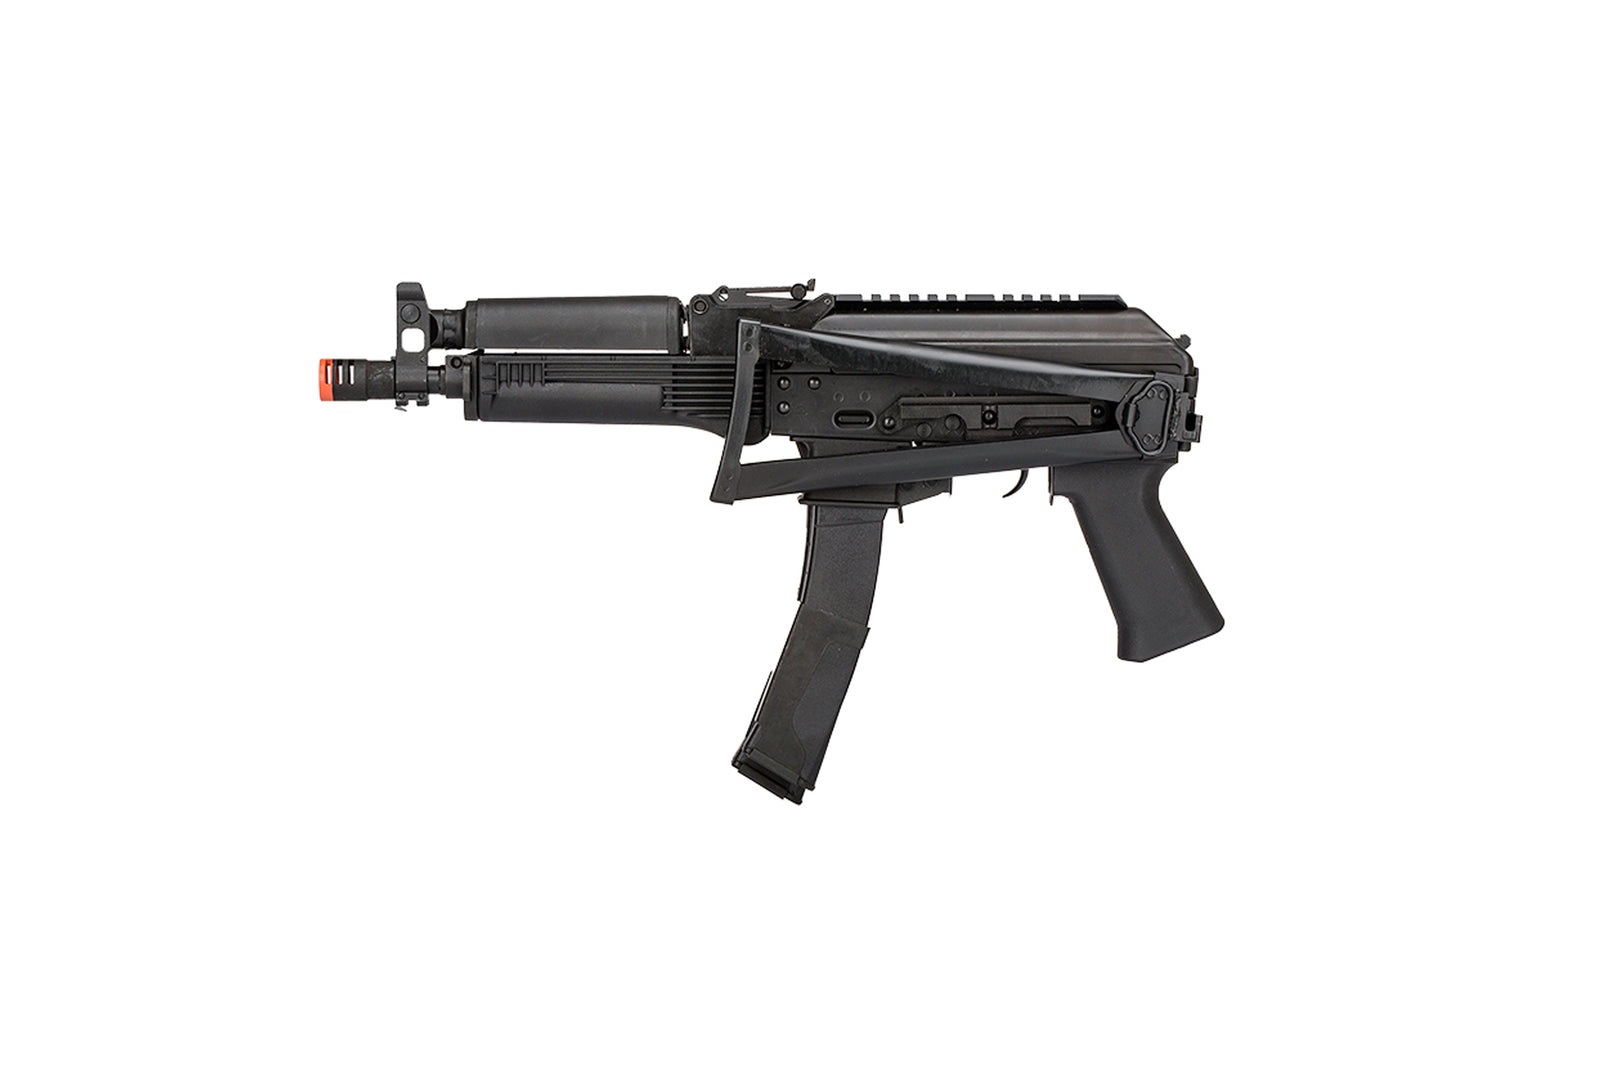 LCT VITYAZ STEEL PP-19-01 AEG AIRSOFT SUBMACHINE GUN - BLACK